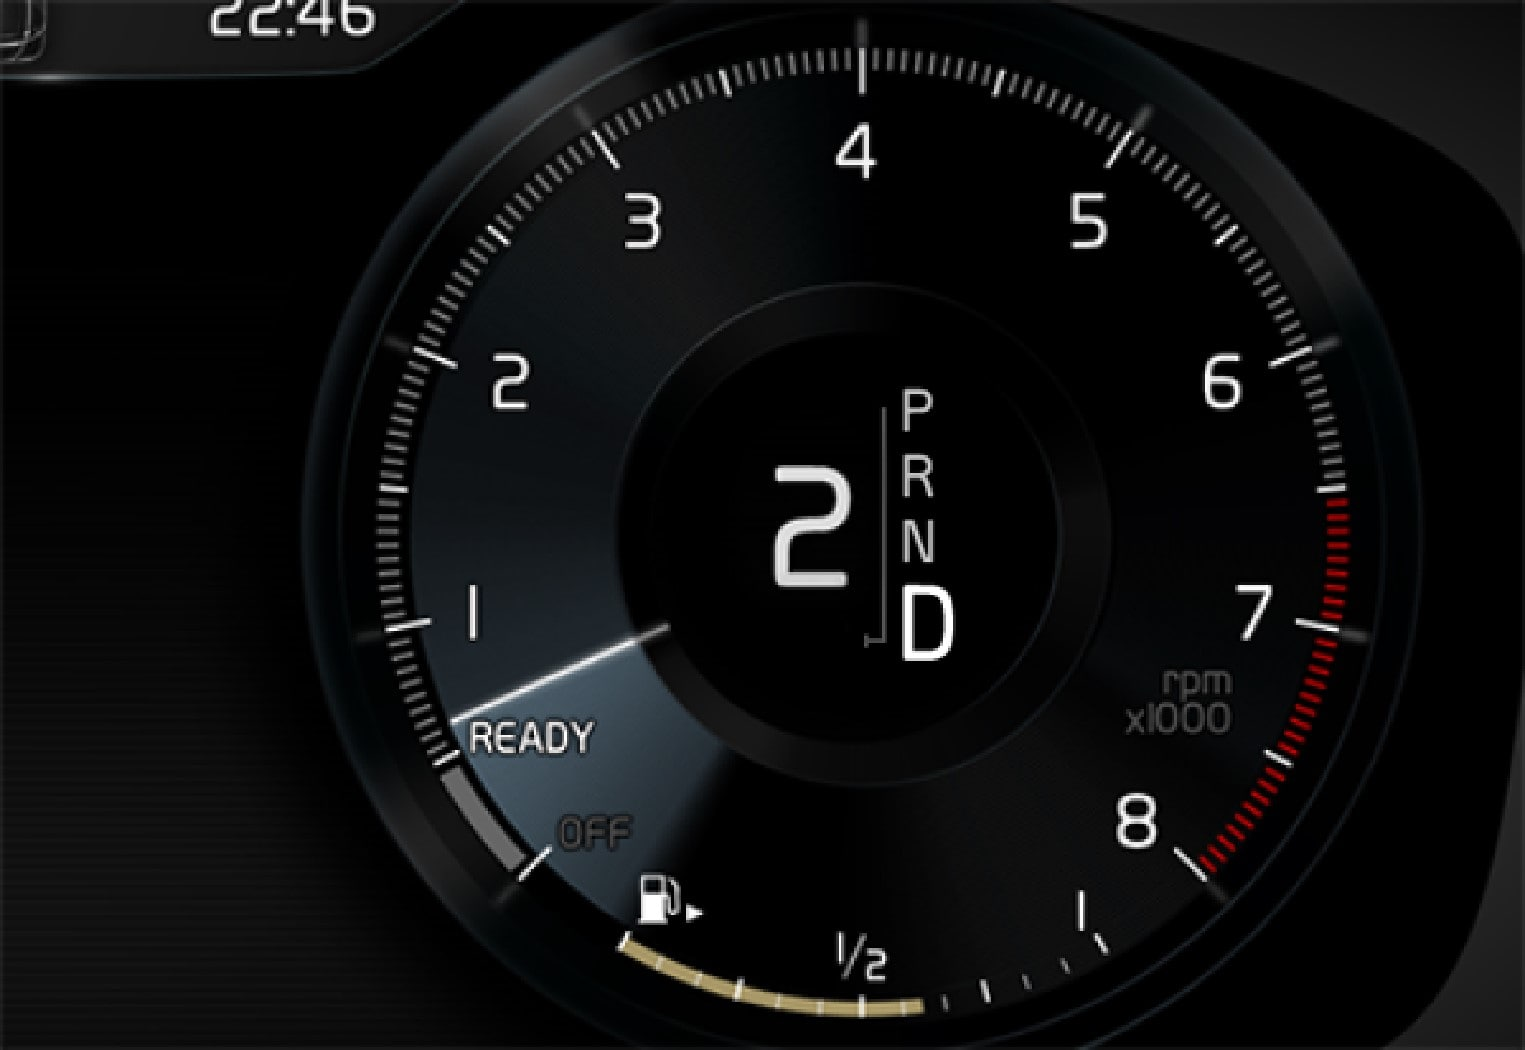 Driver display when changing gear with steering wheel paddles.